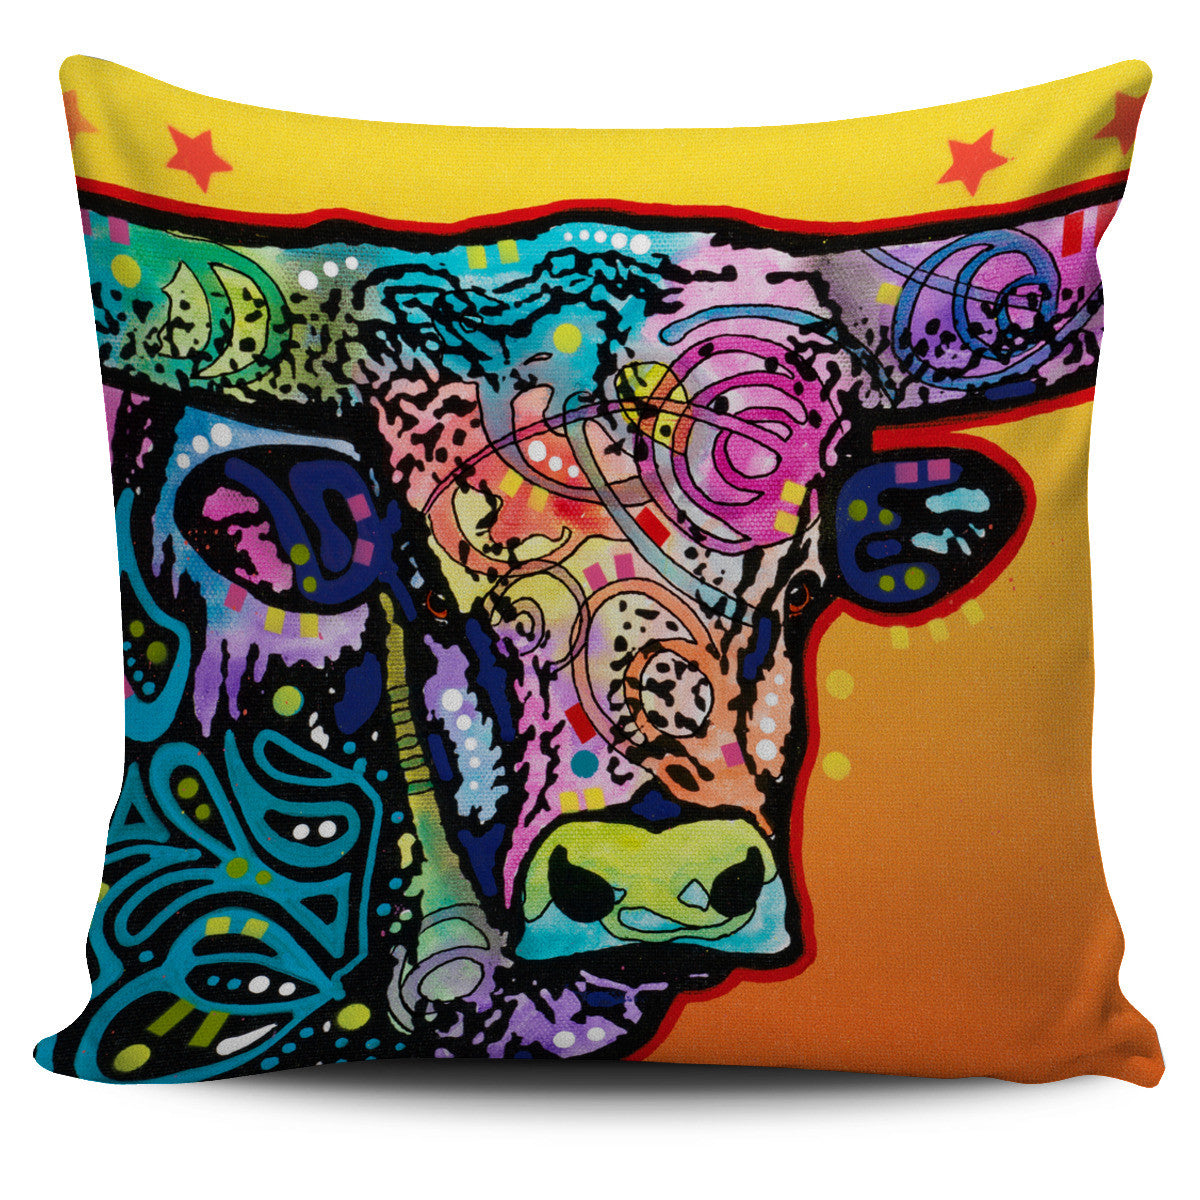 Bull Series Pillow Covers Offer